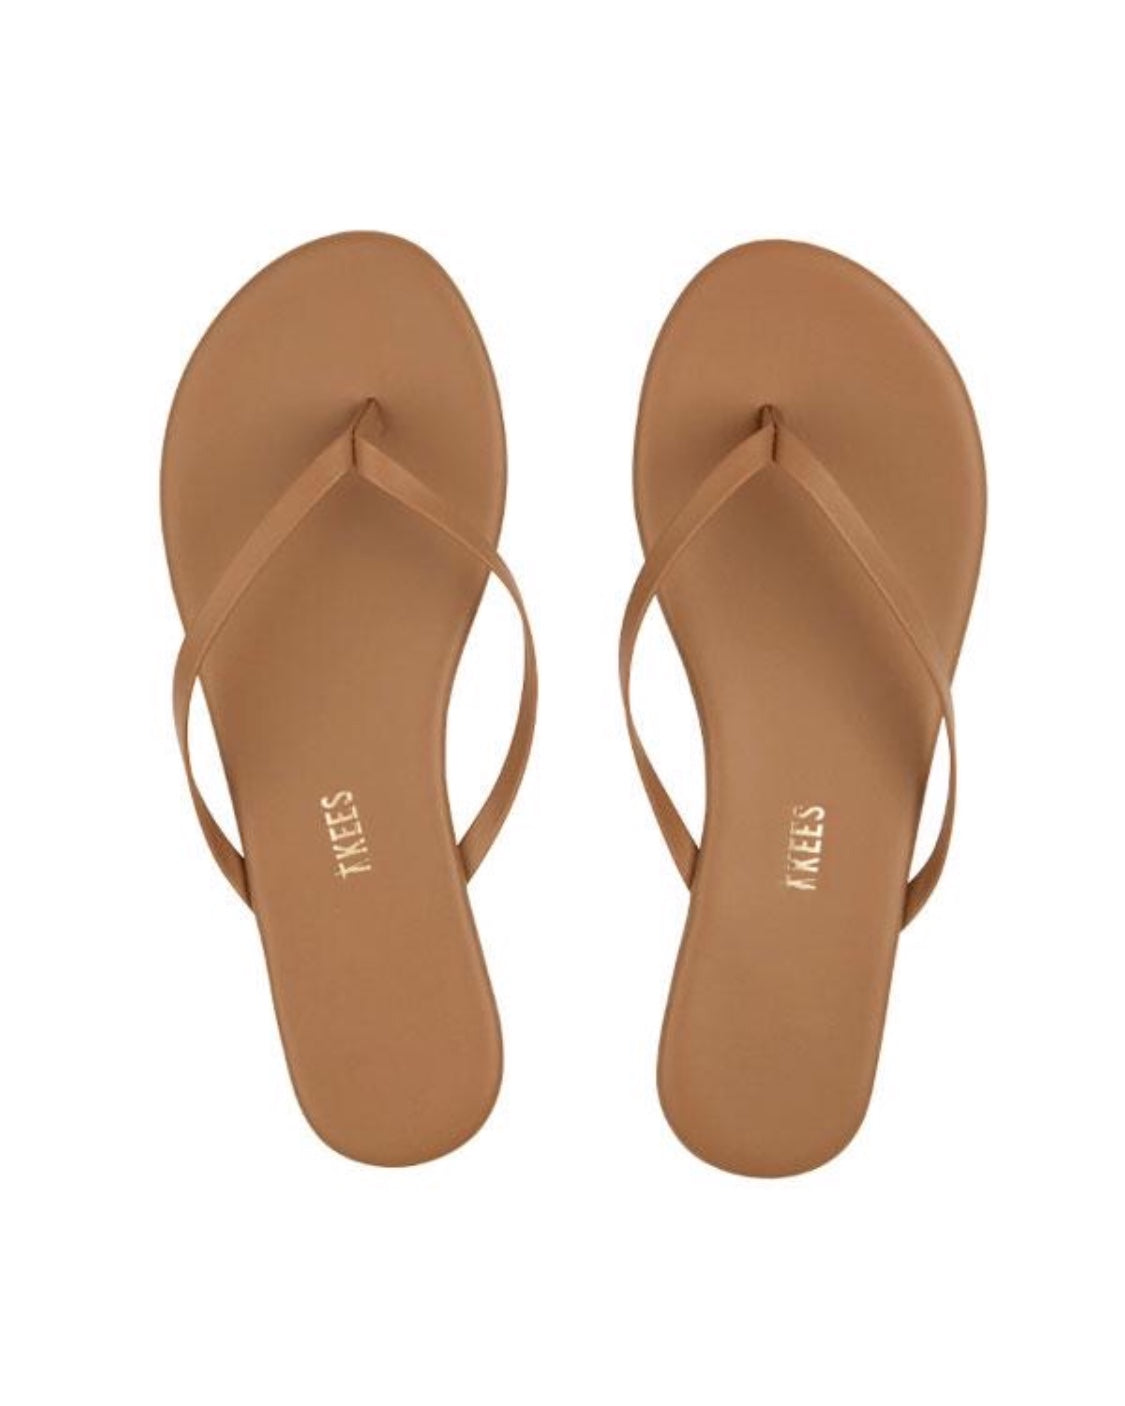 The Beach Bum Foundation Flip Flop